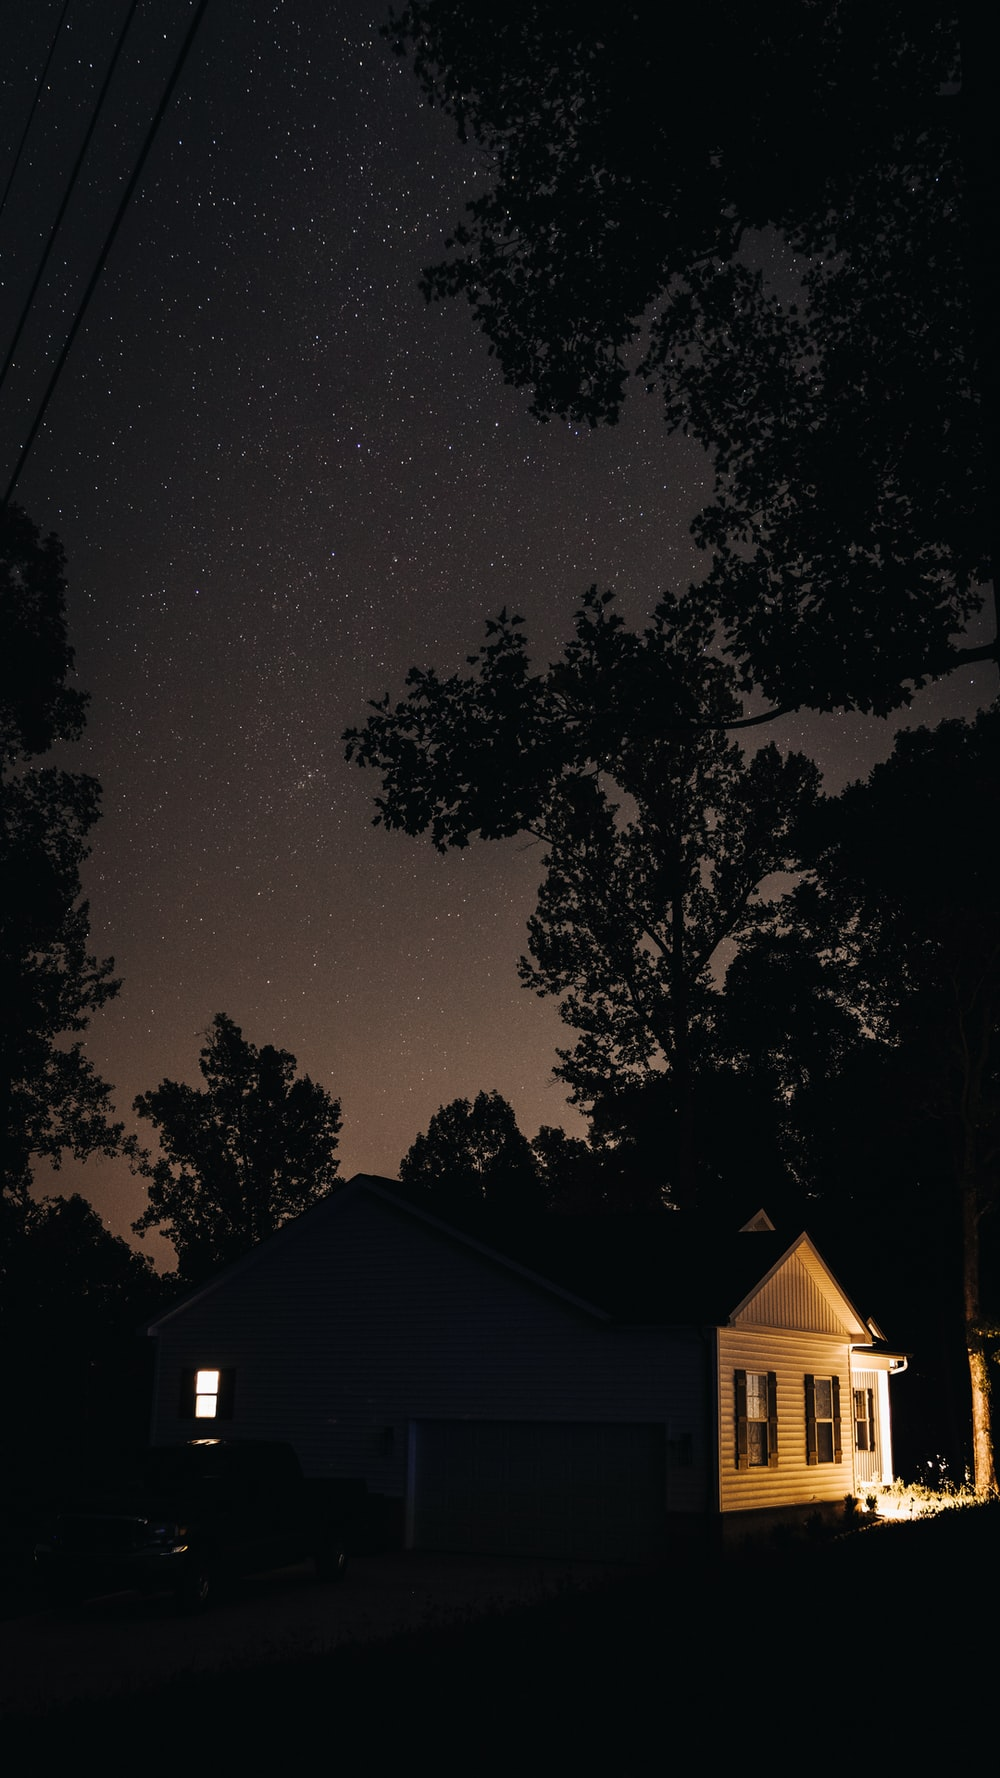 silhouette of trees and house during night time